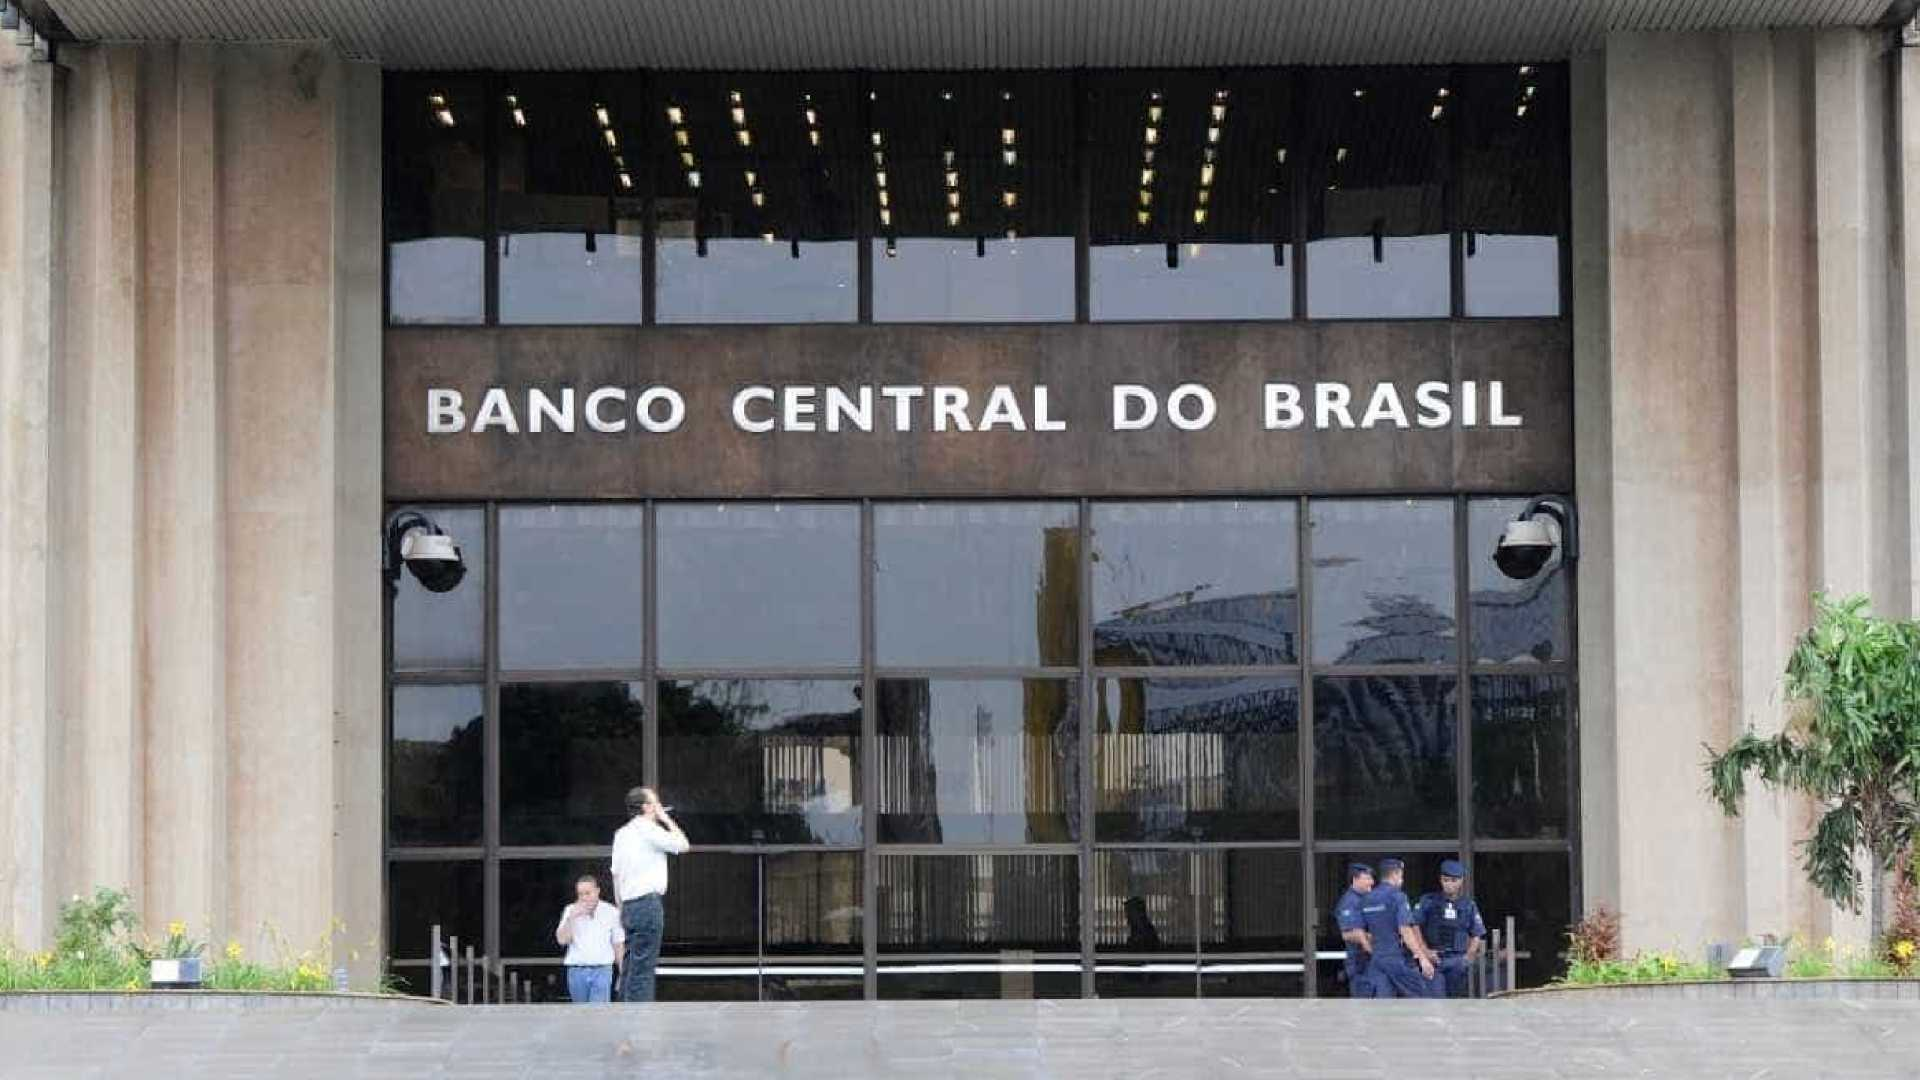 banco central bc - Banco Central pode interferir na disputa eleitoral - Por Míriam Leitão